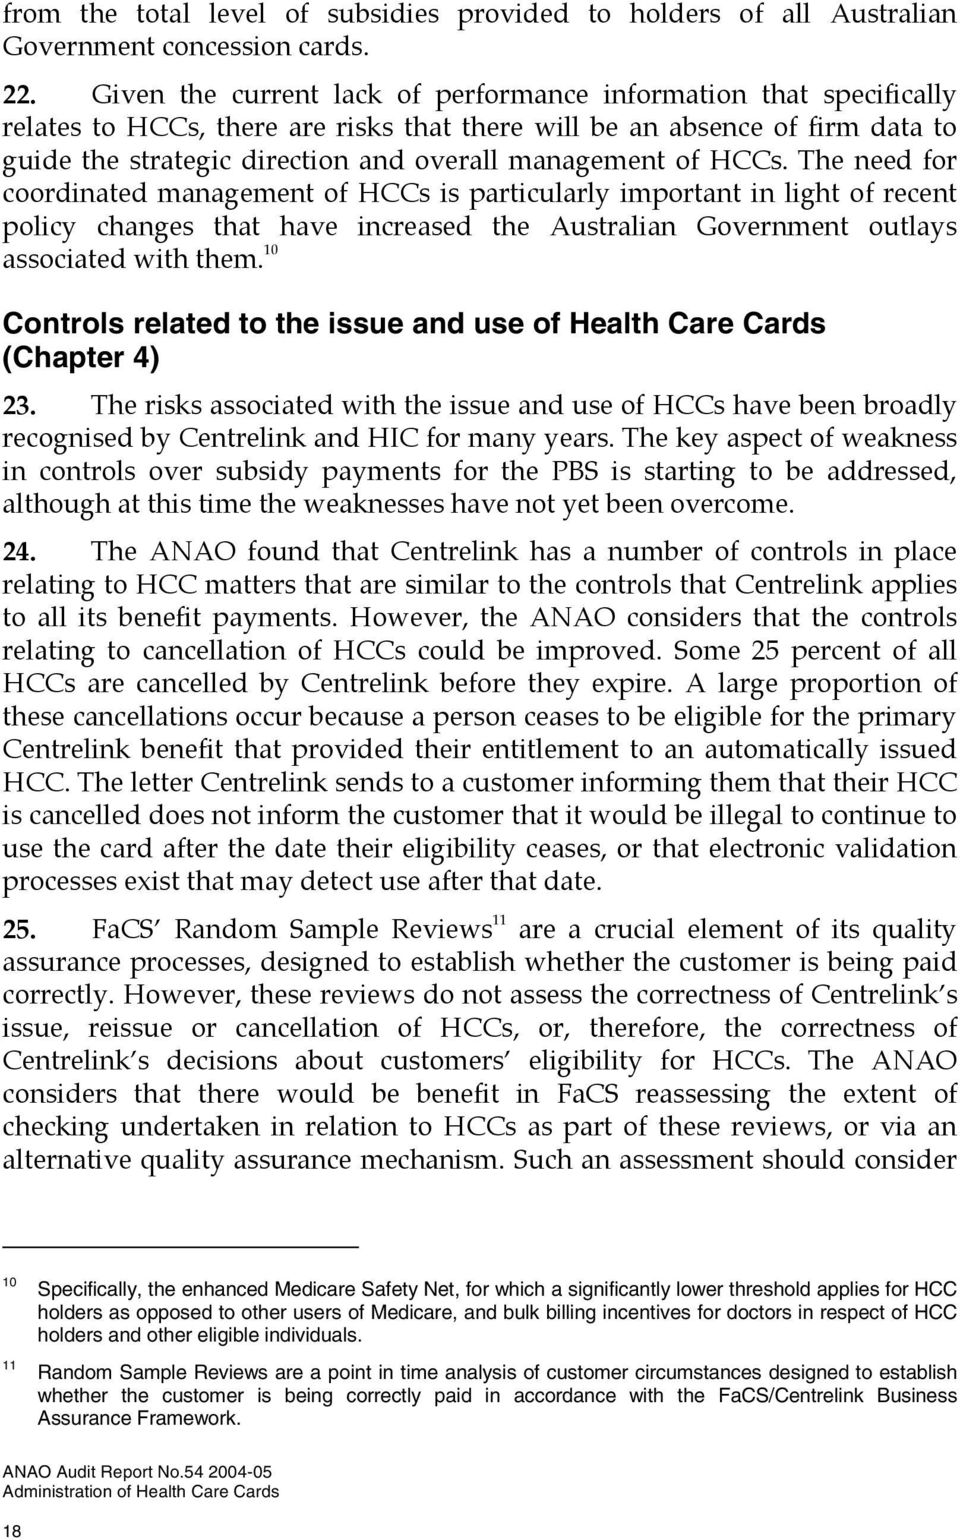 of HCCs. The need for coordinated management of HCCs is particularly important in light of recent policy changes that have increased the Australian Government outlays associated with them.